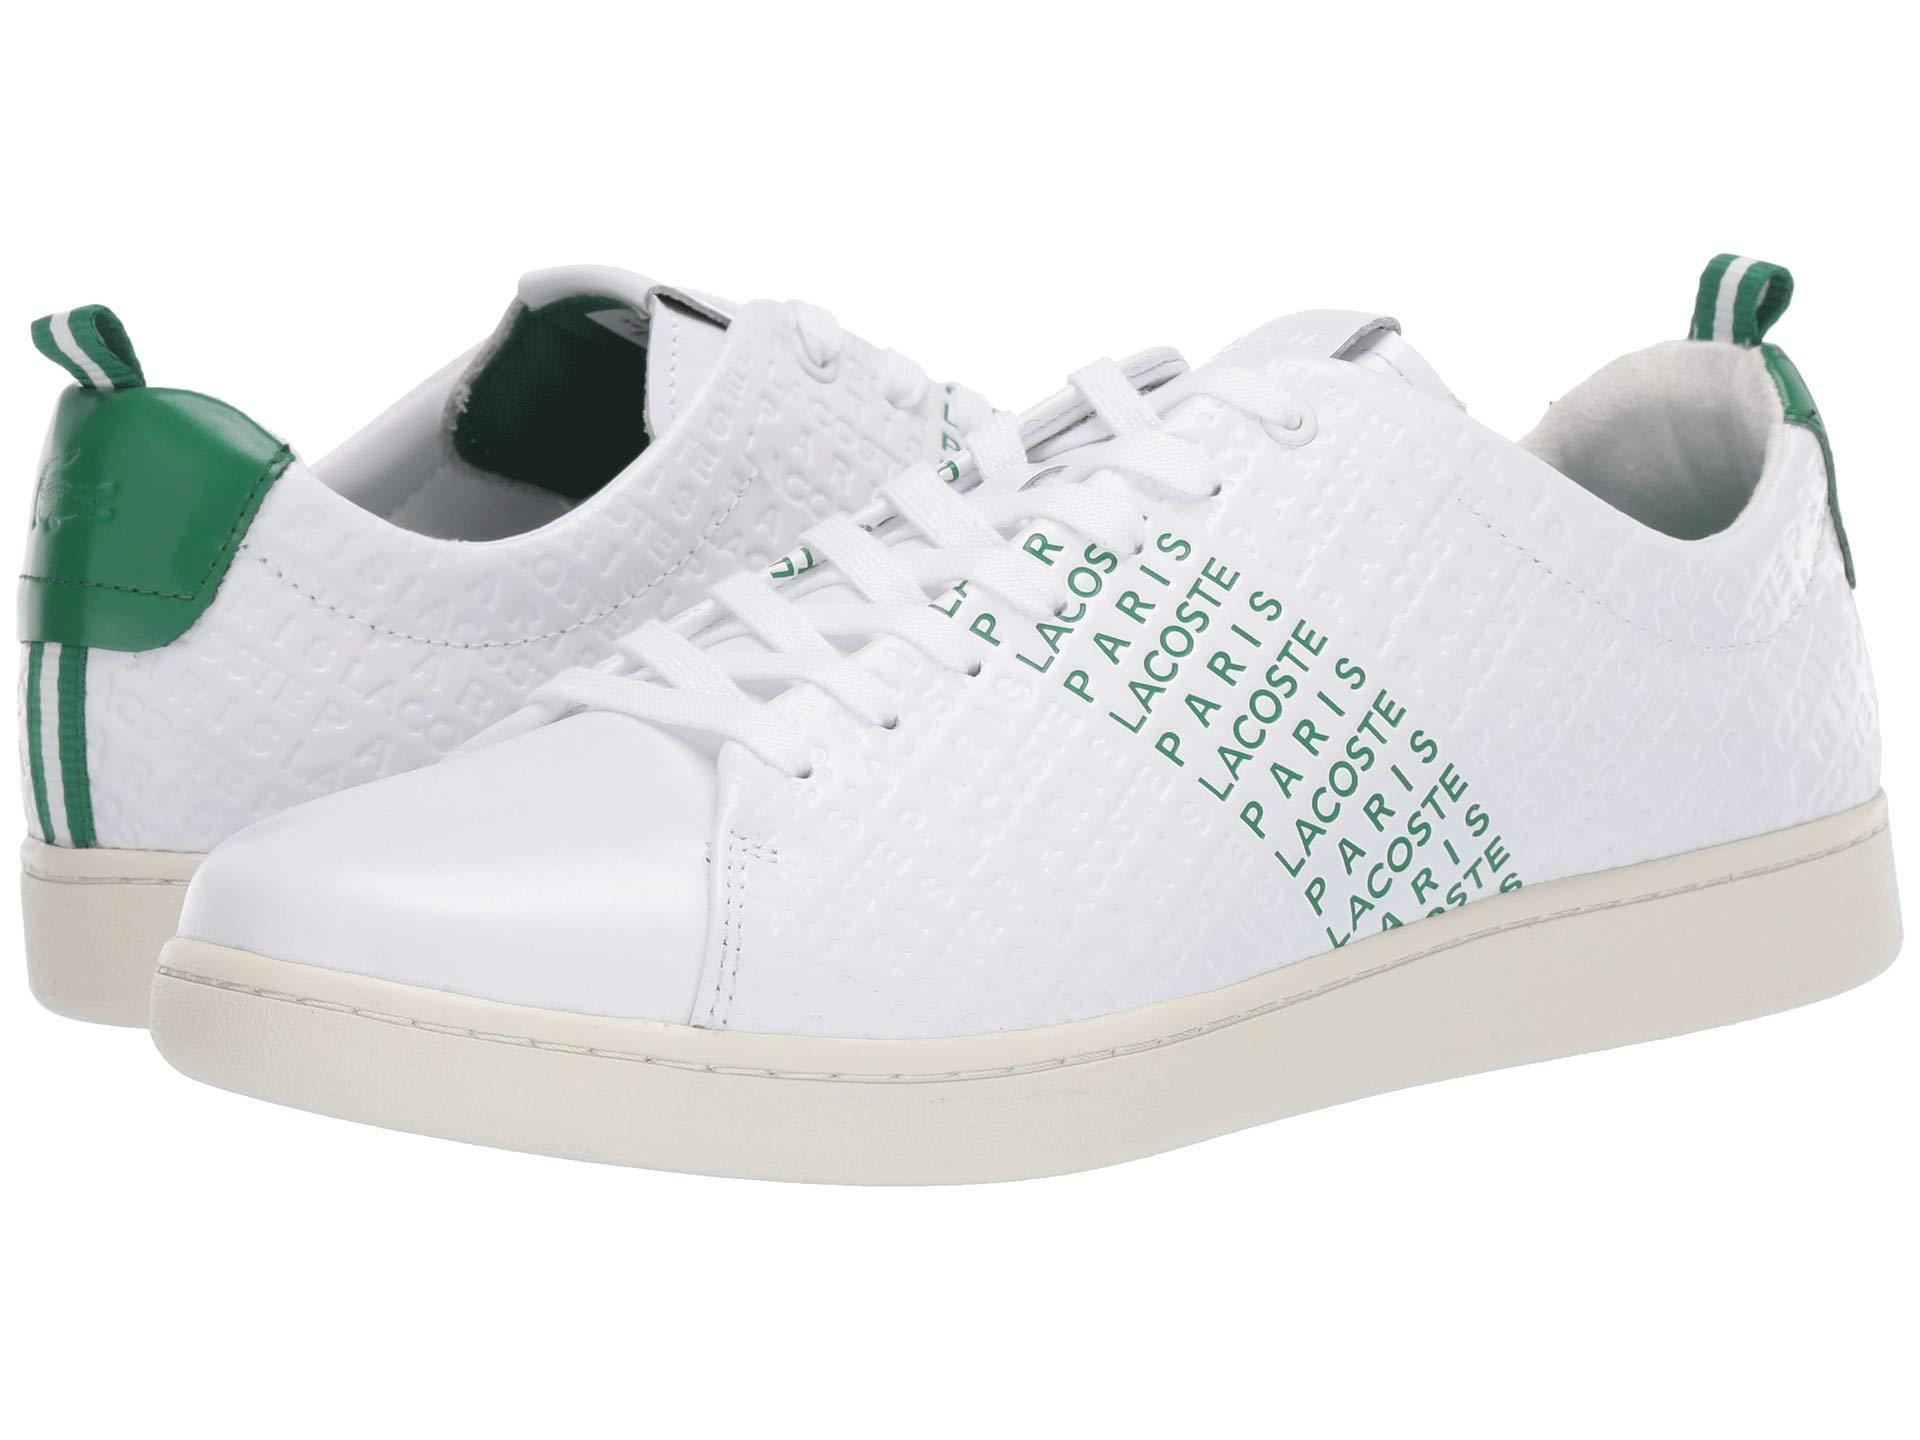 7ded5ef96 Lyst - Lacoste Carnaby Evo 119 9 Mens White   Green Trainers in ...